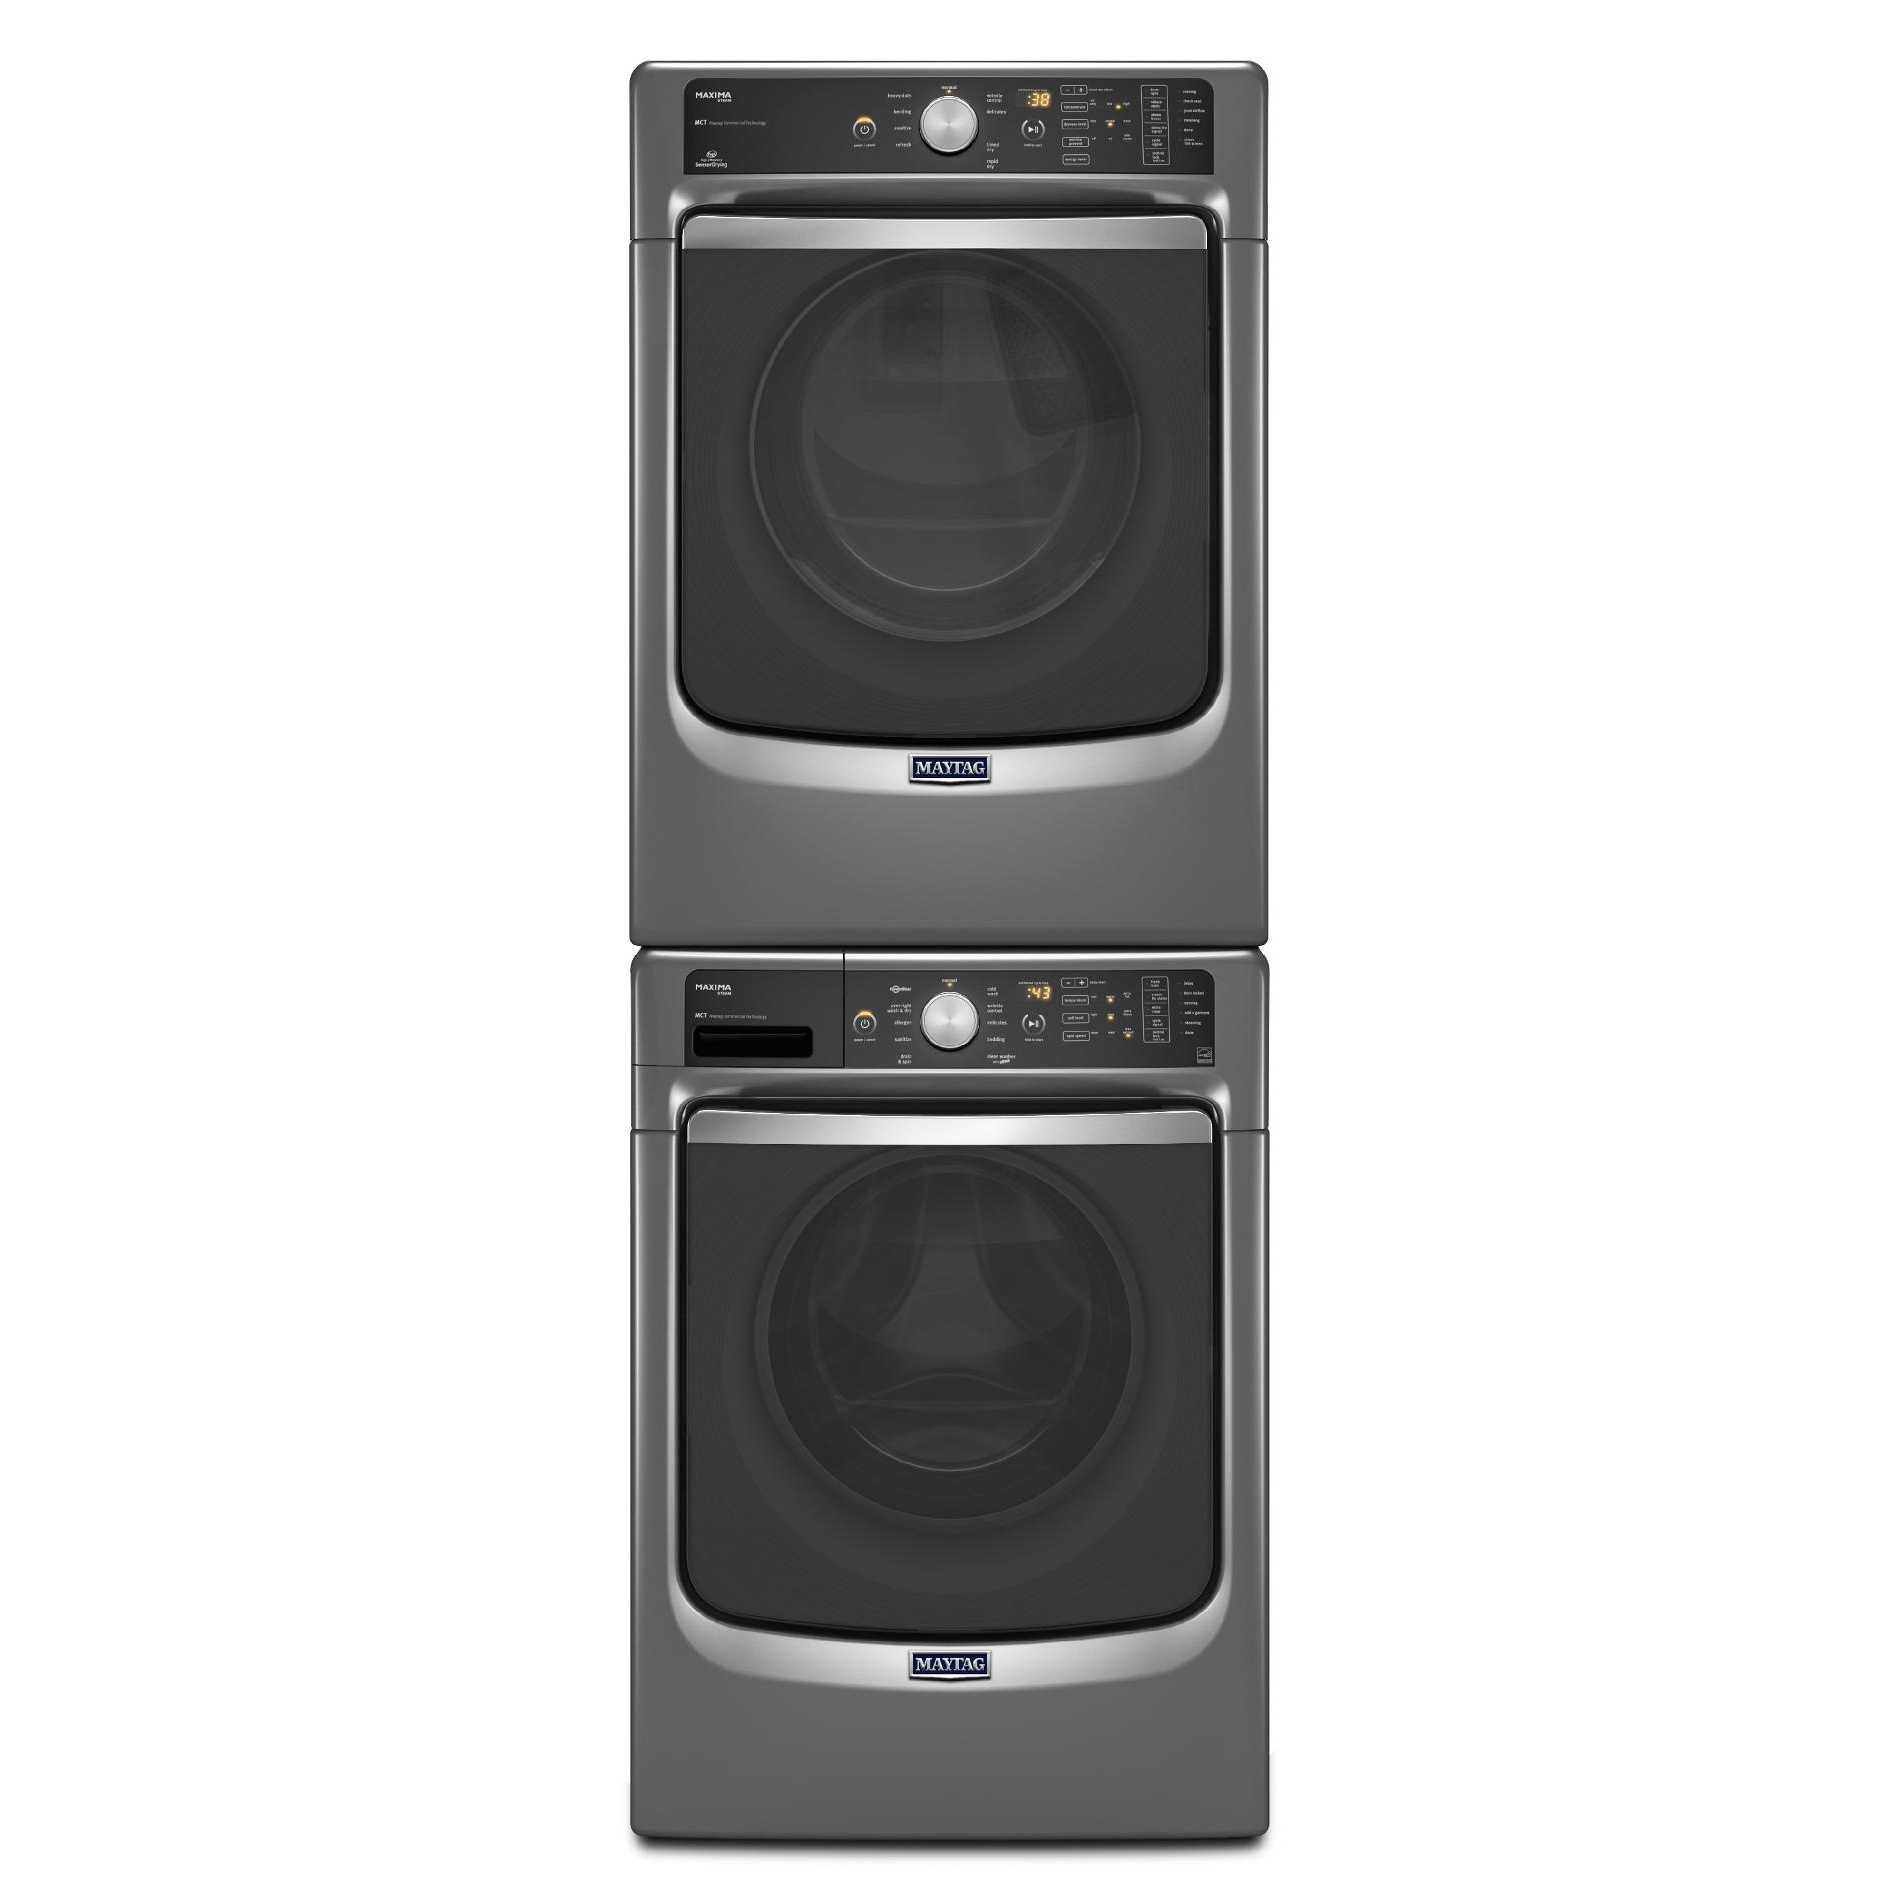 Maytag 7.4 cu. ft. Maxima® Electric Dryer w/ Stainless Steel Drum - Metallic Slate